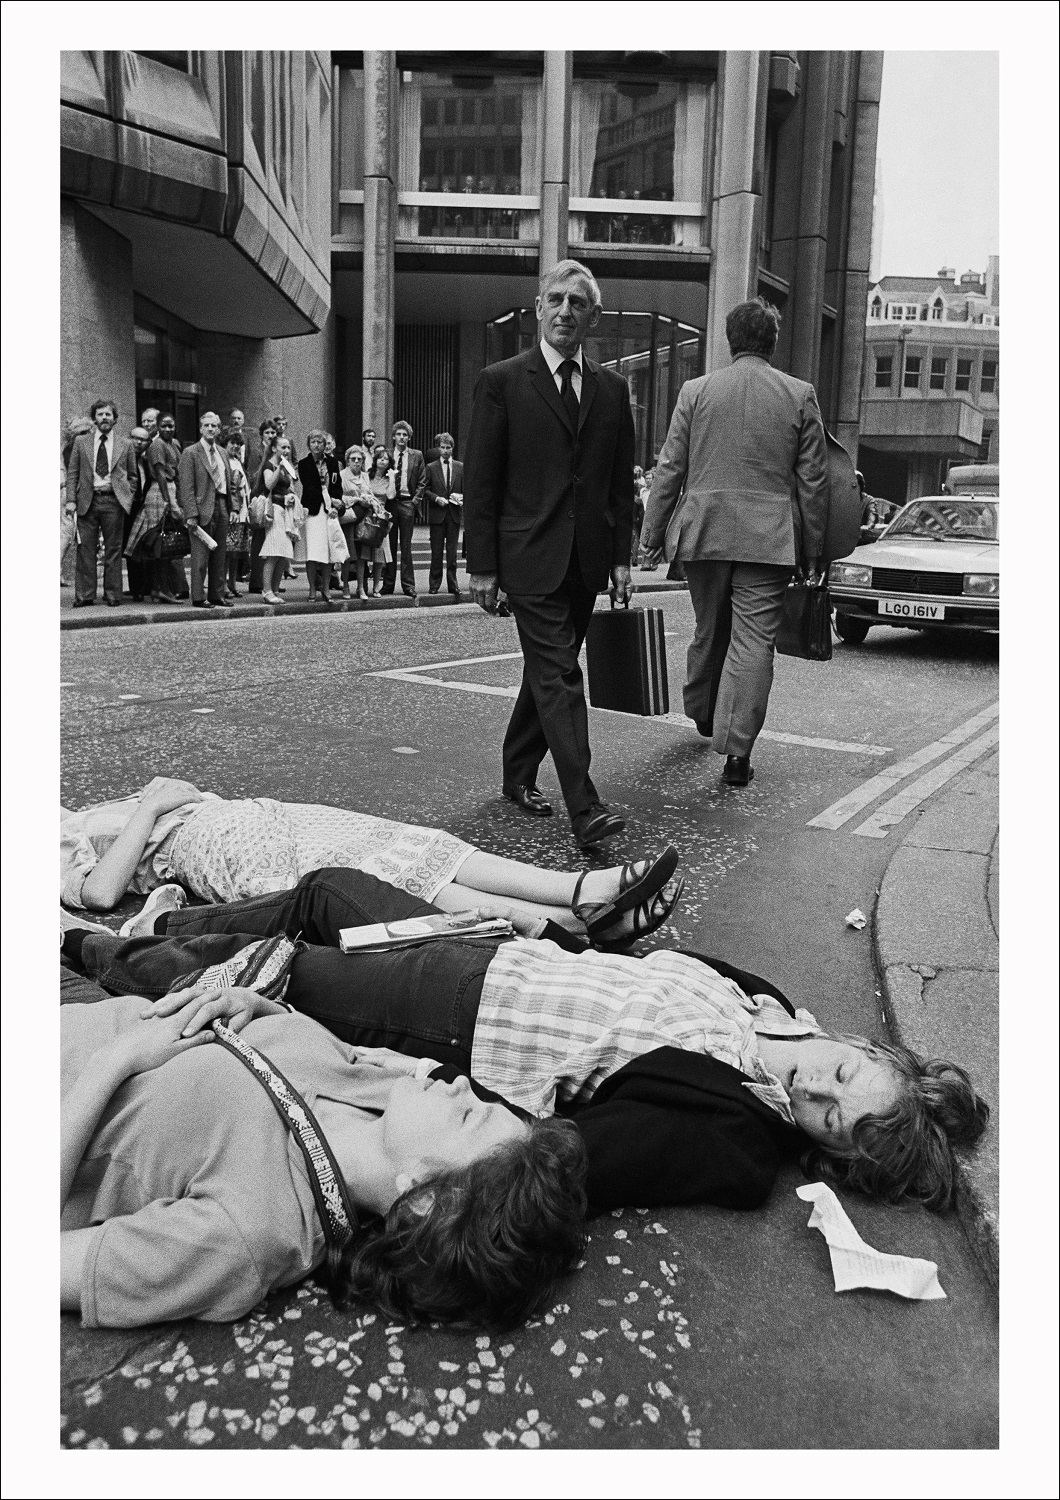 Greenham Common protesters stage a Die-in outside the Stock Exchange during the morning rush hour as U.S President Reagan arrives in Britain, City of London, 1982